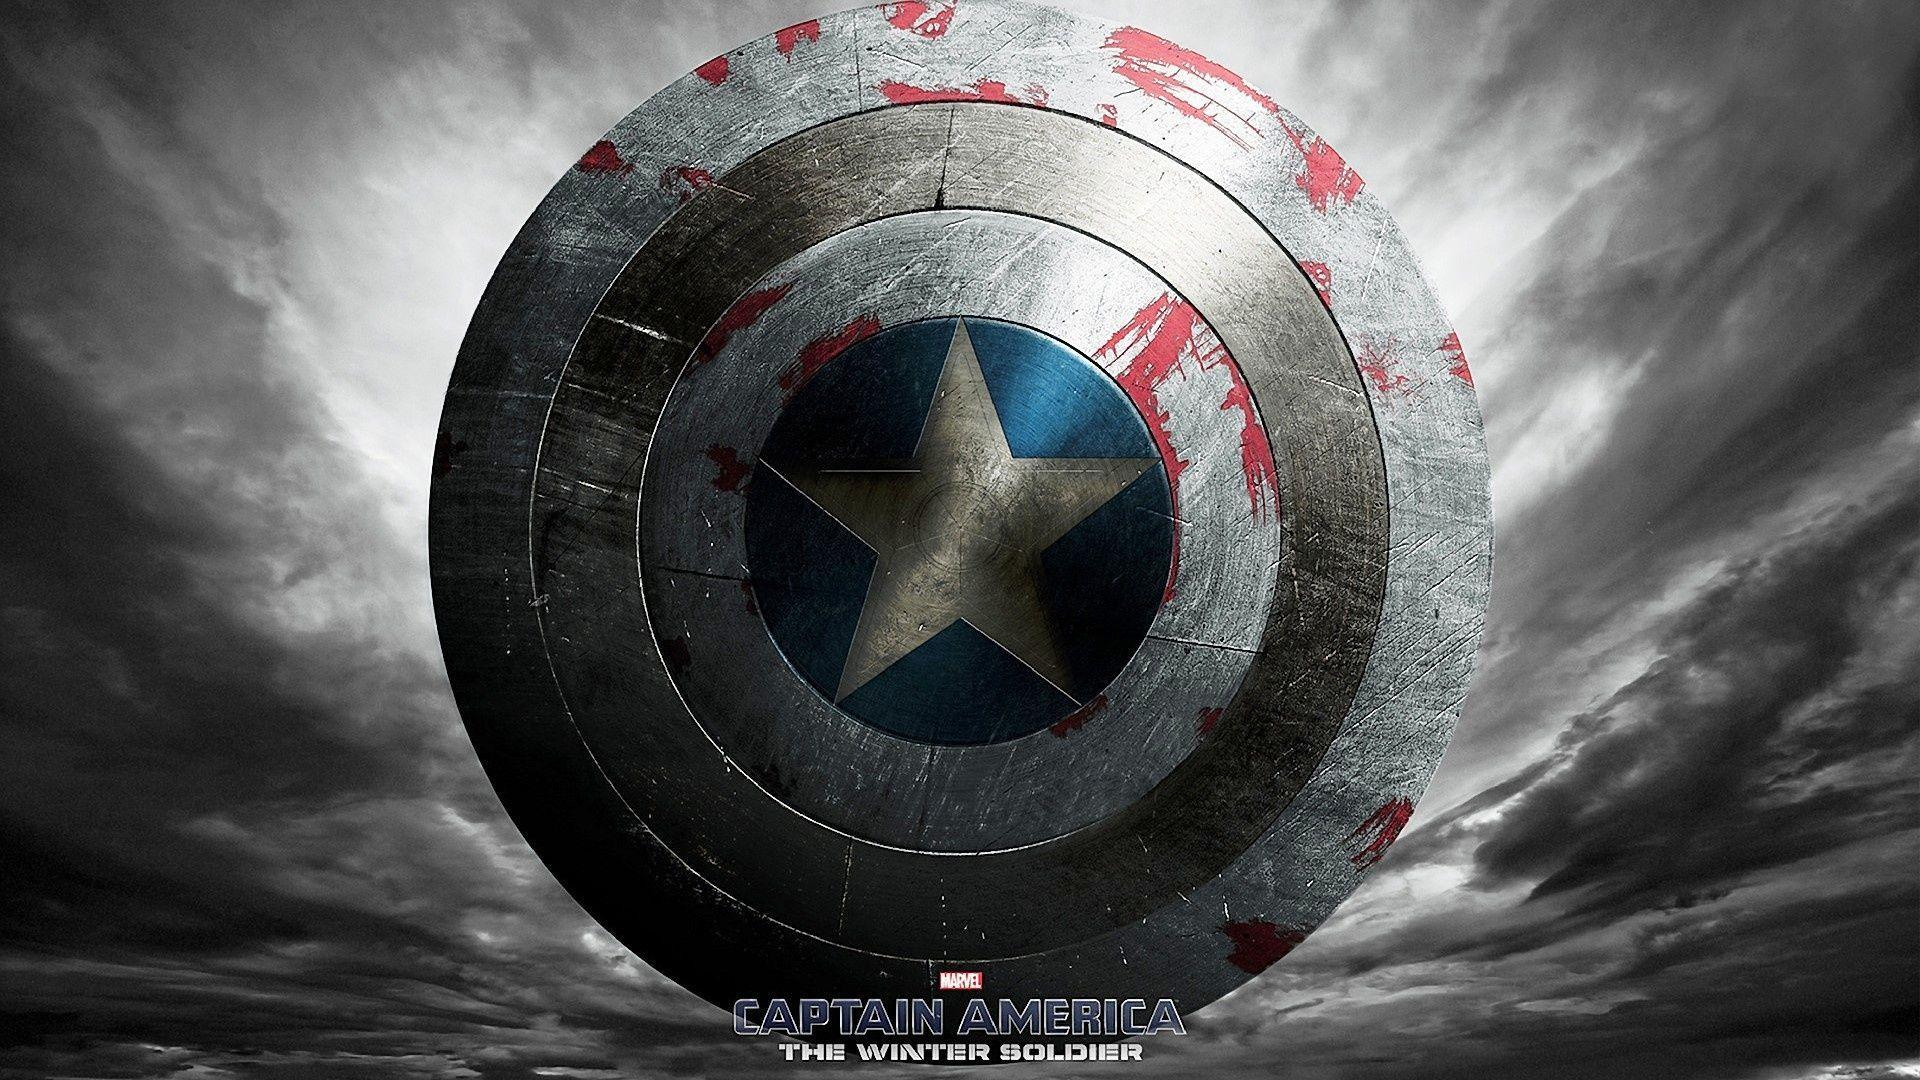 Shield Captain America The Winter Soldier Wallpapers